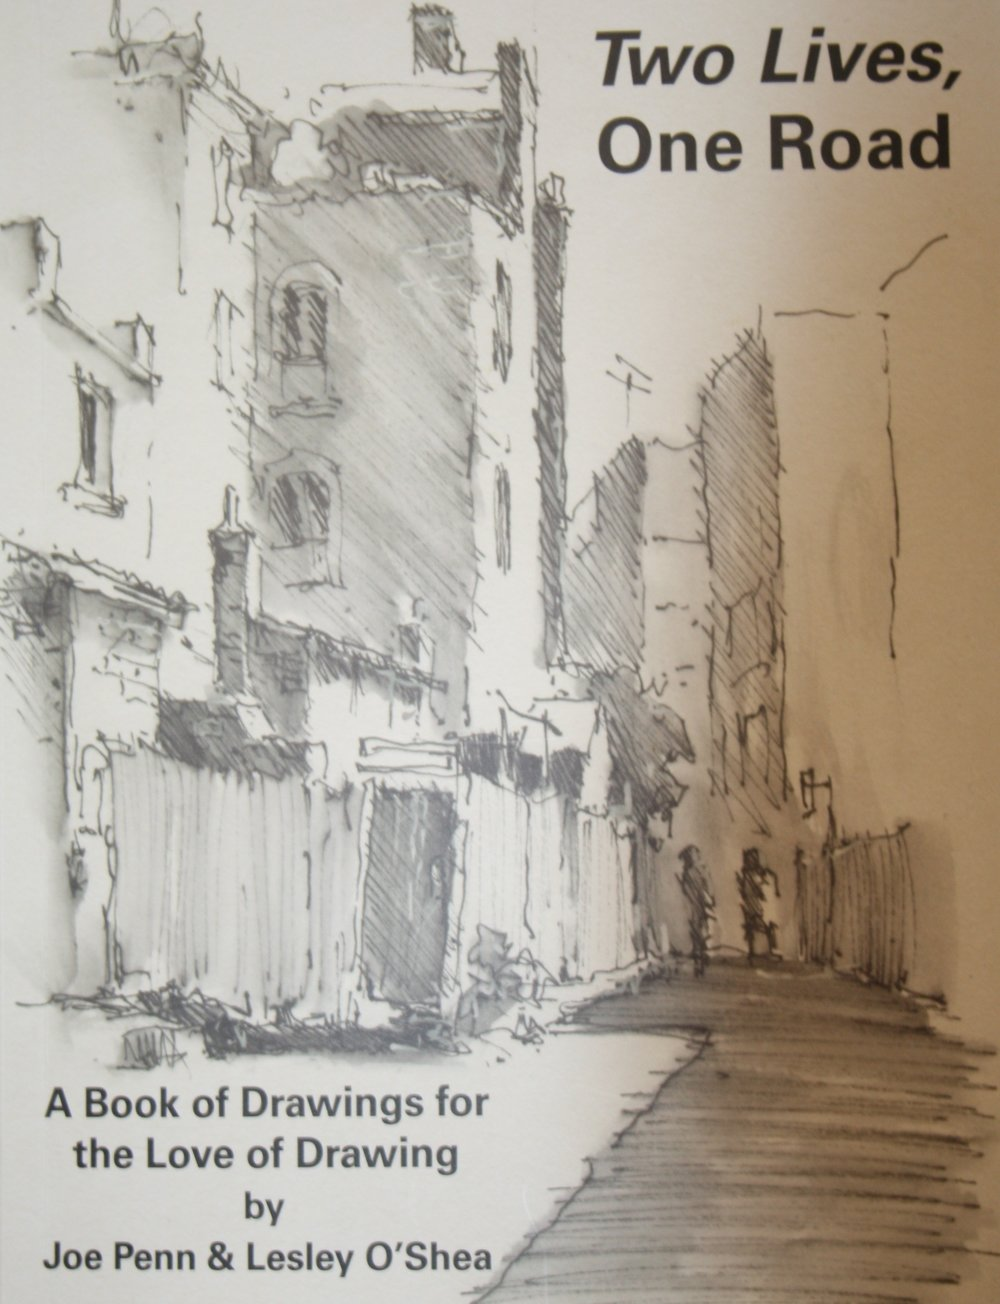 Two Lives, One Road - A Book of DrawingsBy Lesley O'Shea and Joe Penn